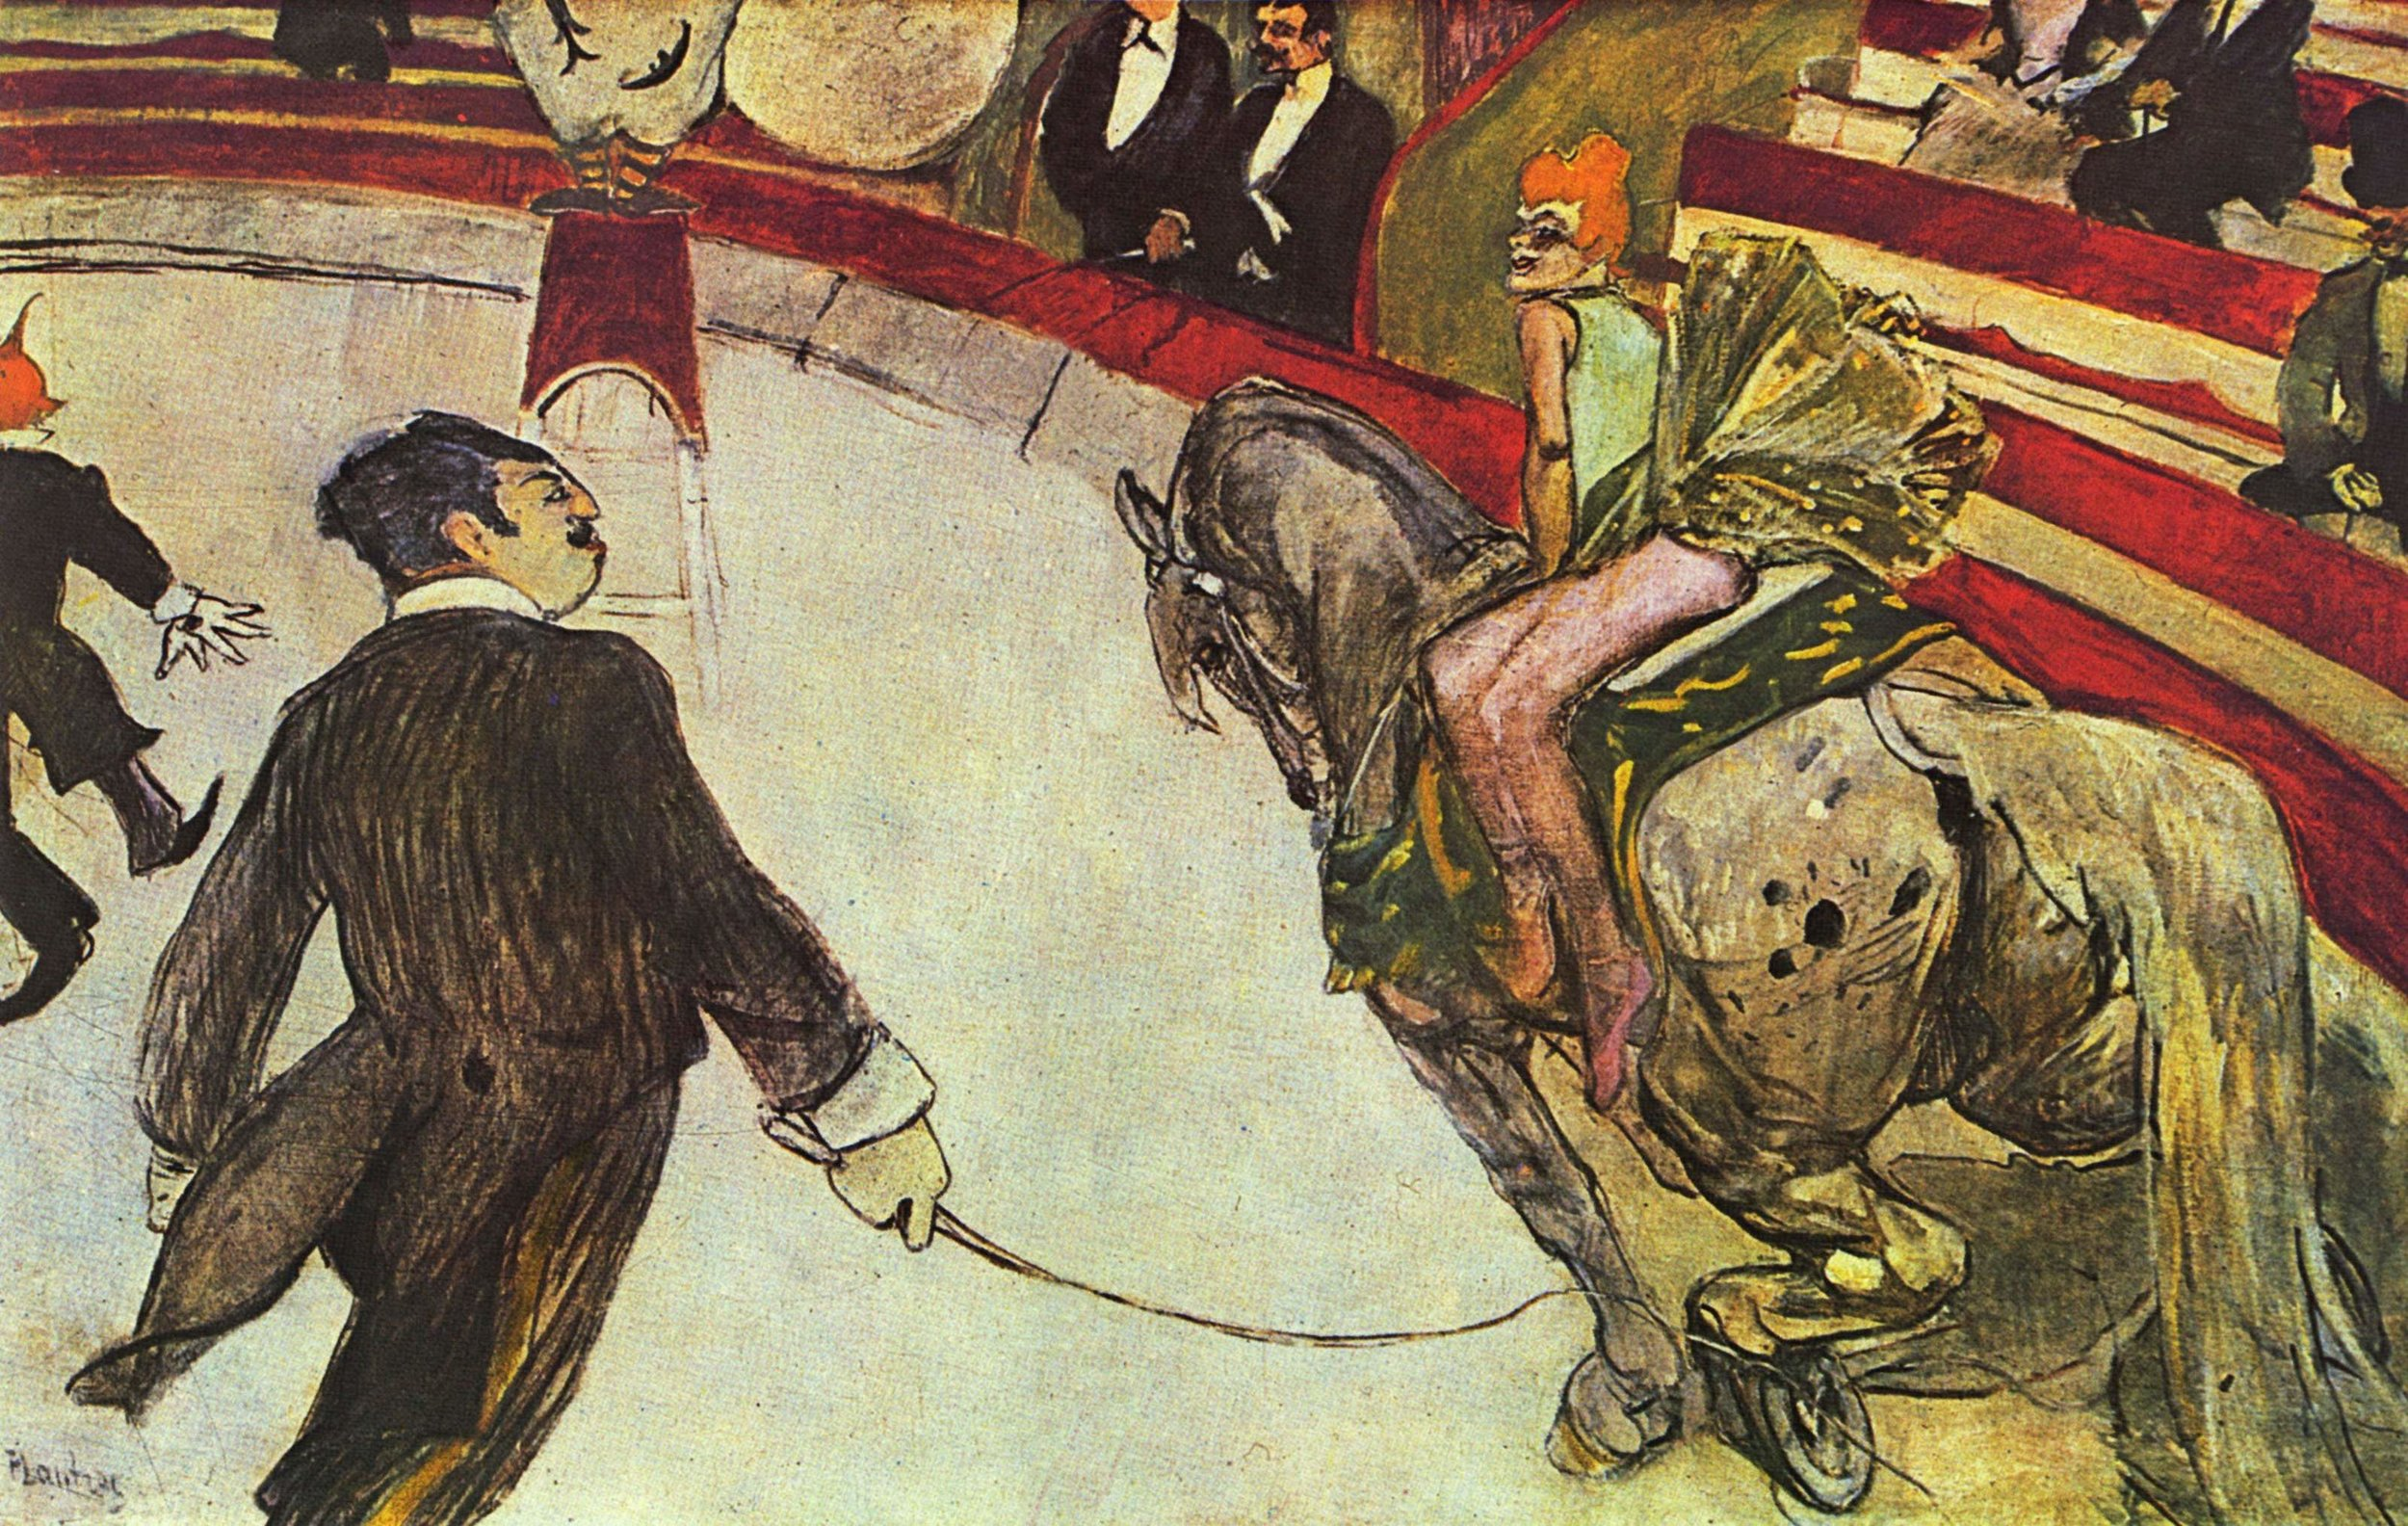 Au cirque Fernando, l'écuyère, 1888,  Henri de Toulouse-Lautrec, (Image courtesy of the Art Institute of Chicago)